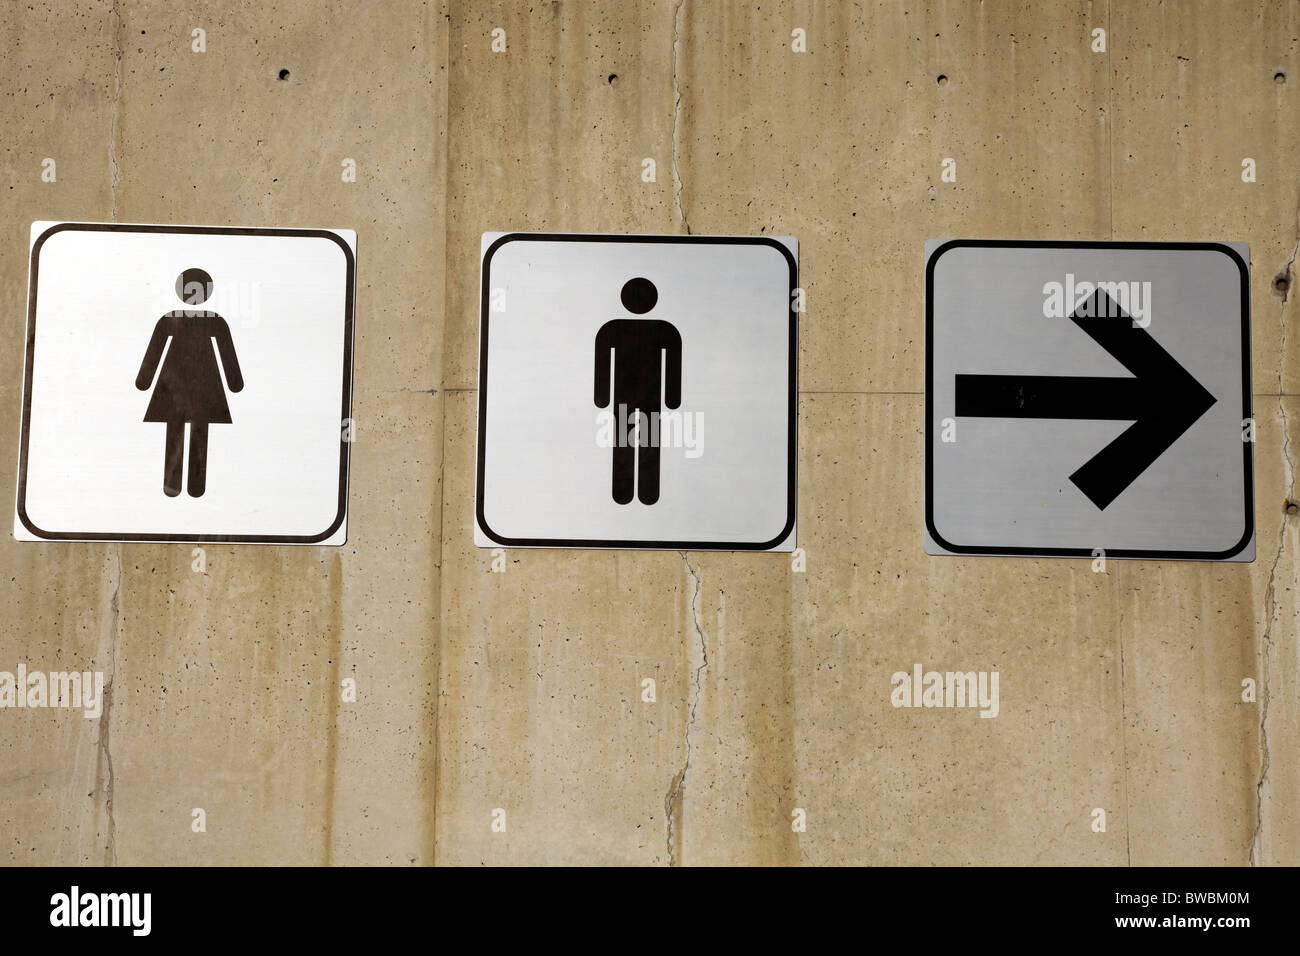 Couples this way restroom signs on concrete wall